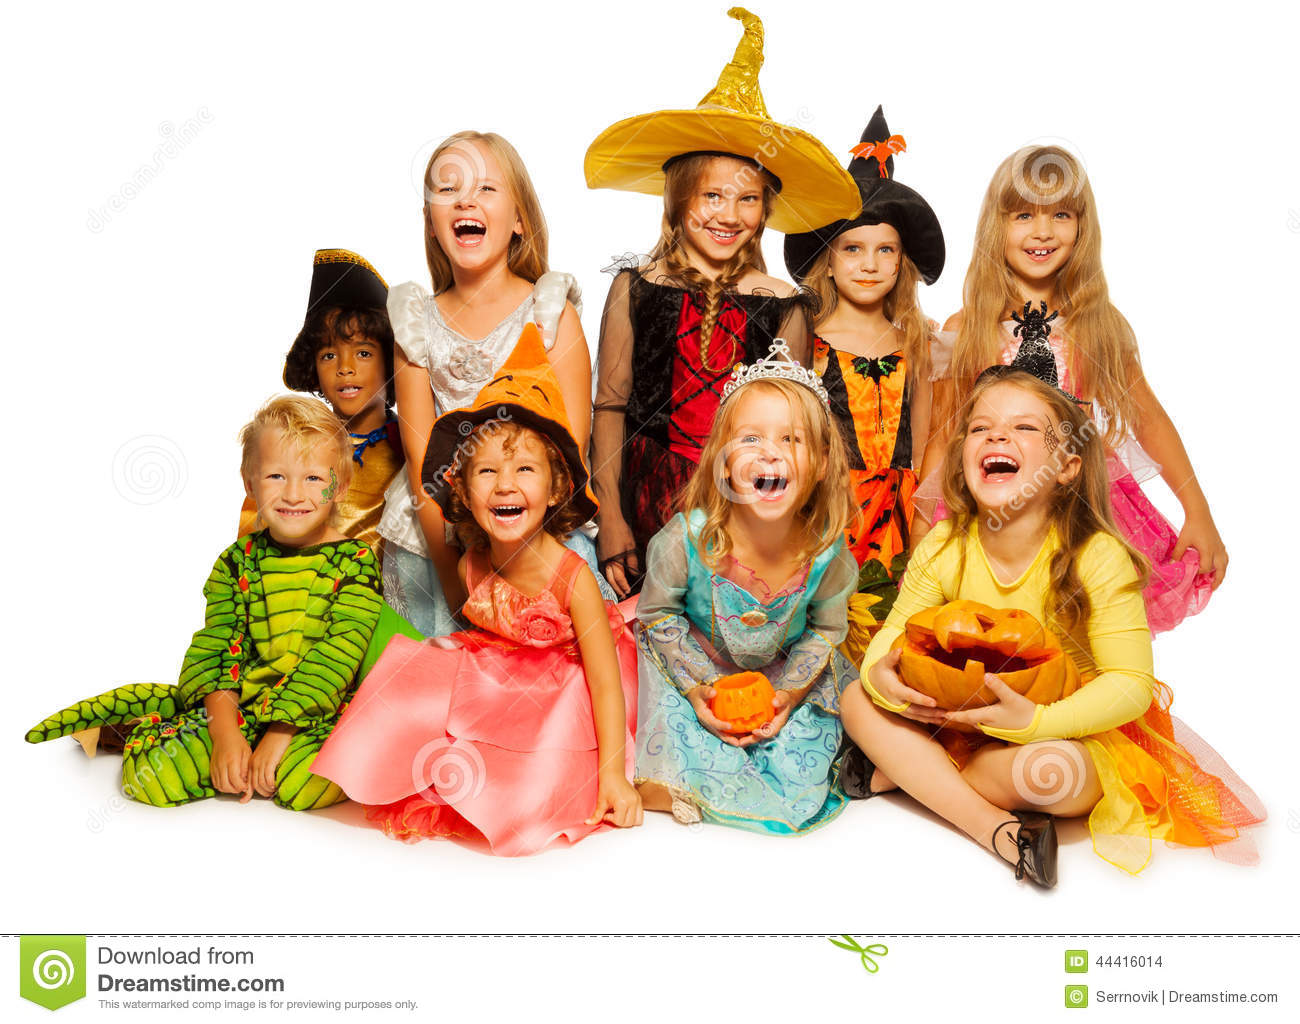 royaltyfree stock photo download large group of kids in halloween costumes